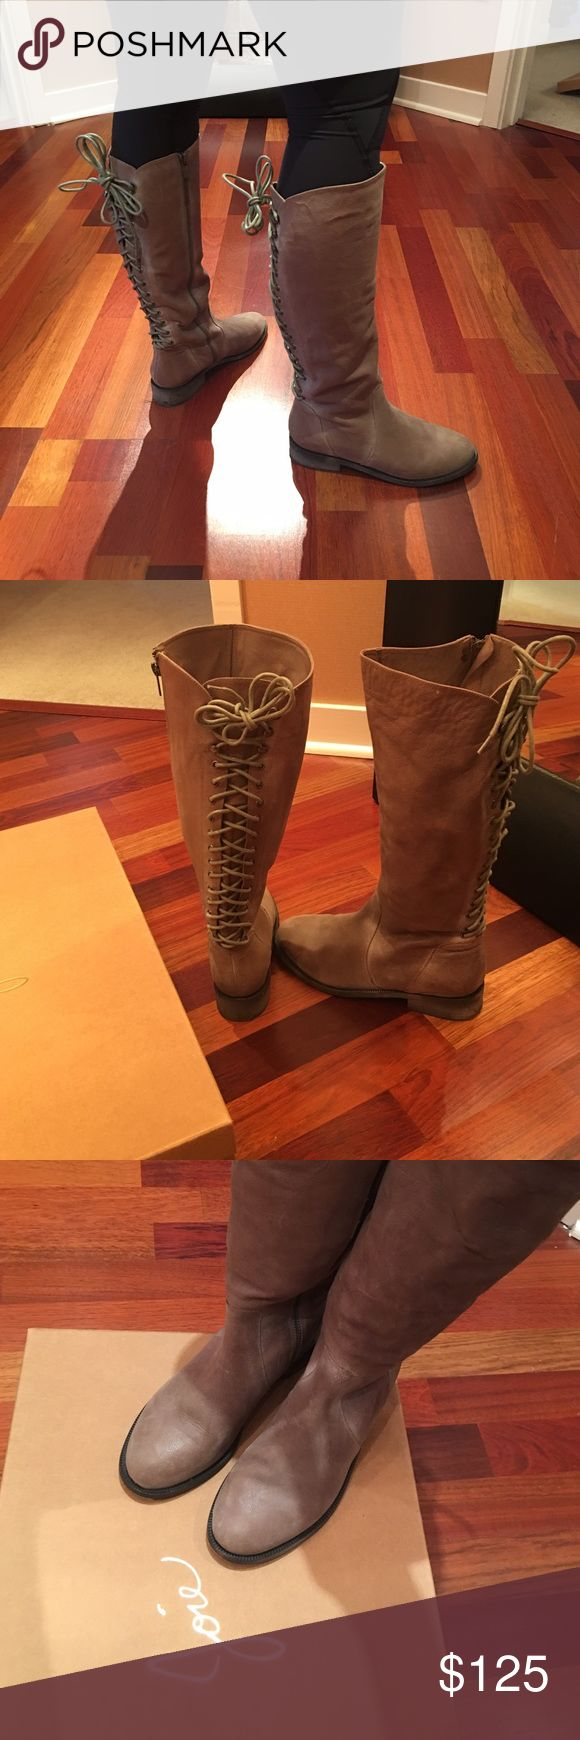 """Joie """"Slow Ride"""" Tall Lace Up Boot Gently worn """"Slow Ride"""" tall lace up boot from Joie in beige with a slight distressed look, side zipper for easy on/off.  Comes with box. Joie Shoes Lace Up Boots"""